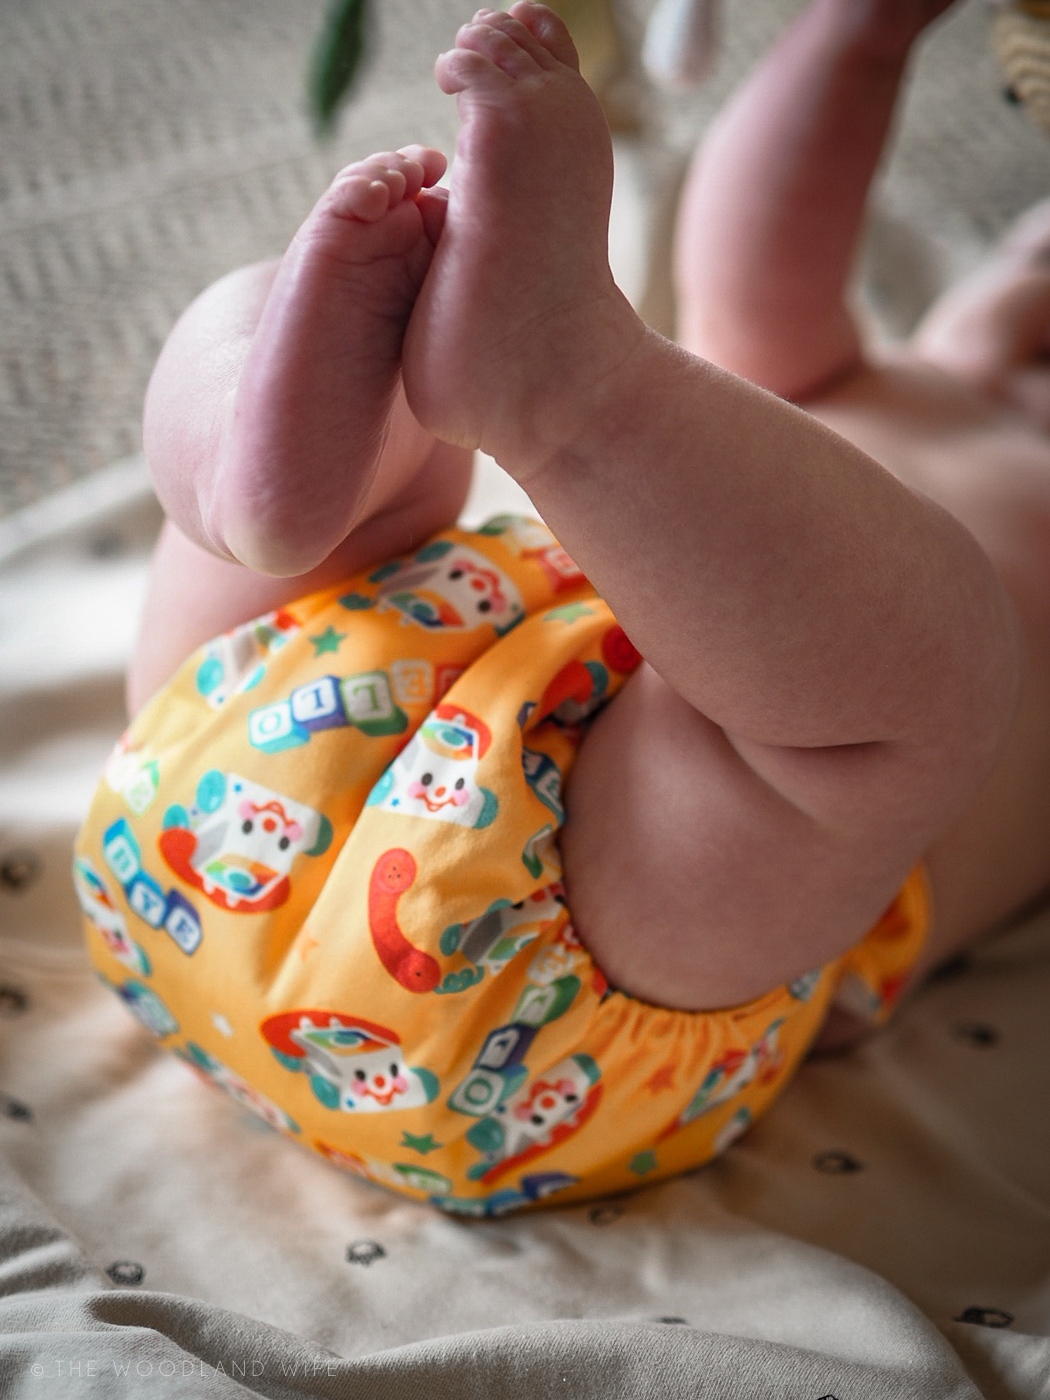 The Woodland Wife 2019 - Reuseable Cloth Nappies - TotsBots